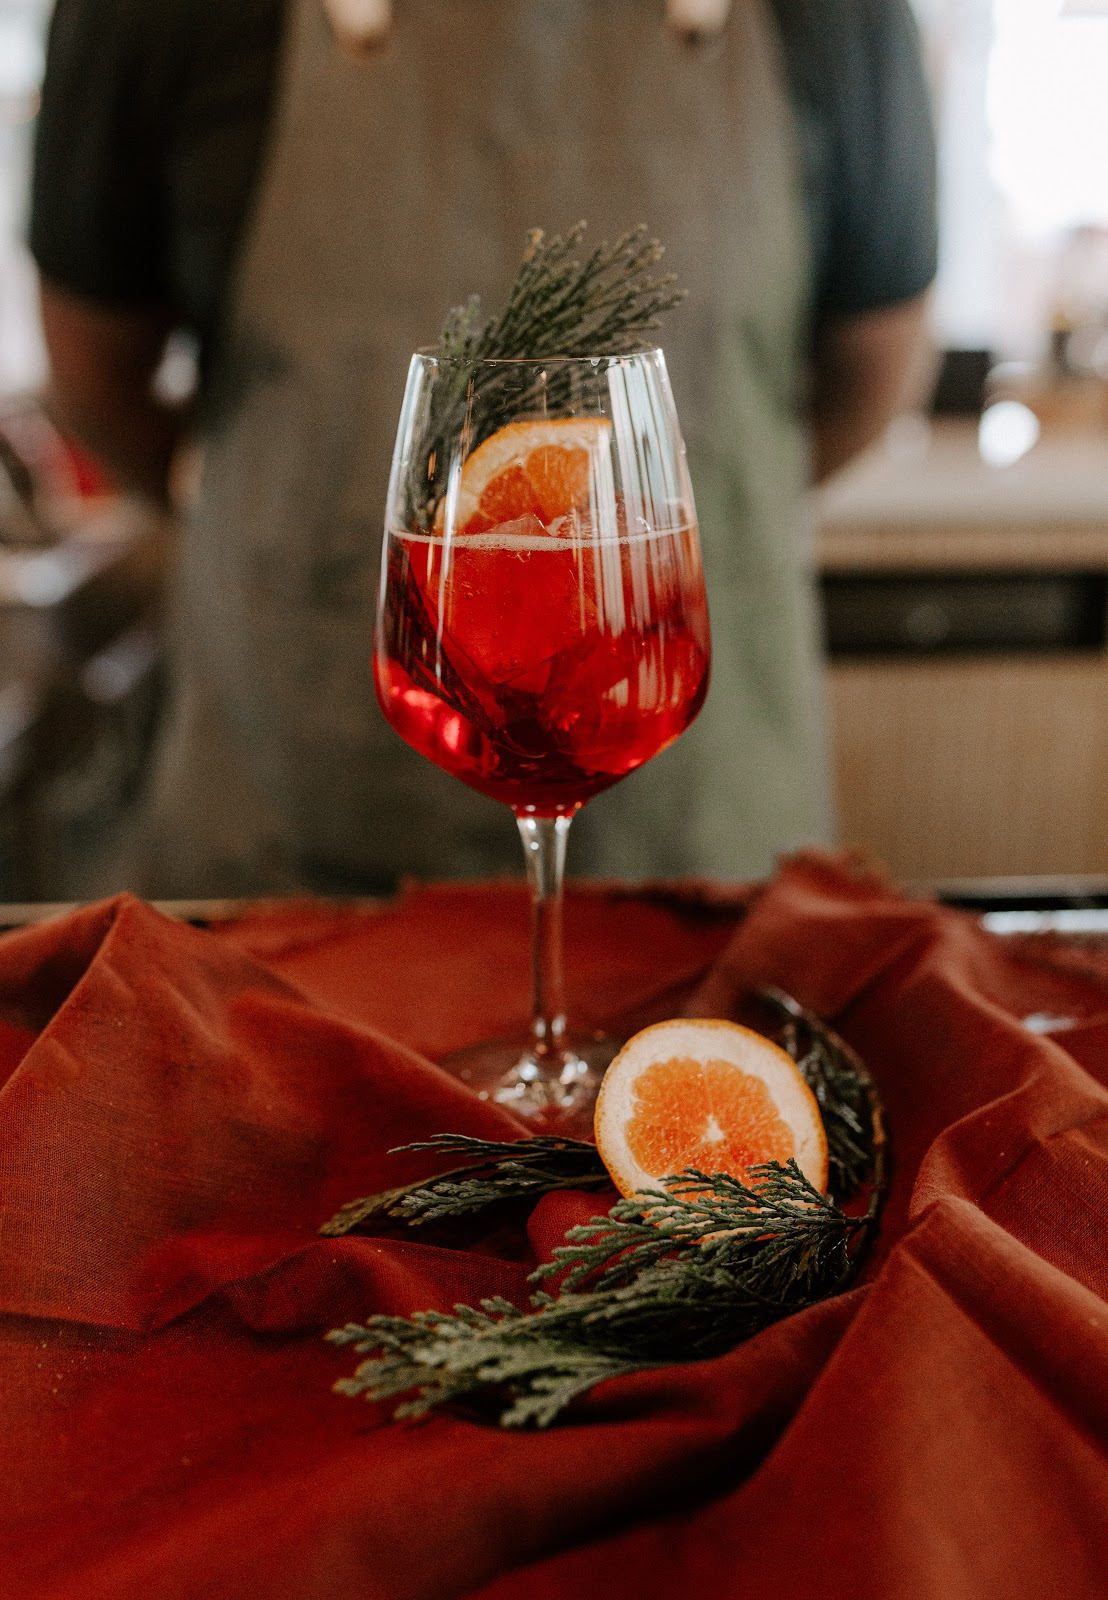 Beautiful stemmed wineglass with amber colored alcoholic beverage and orange slice and cedar leaves